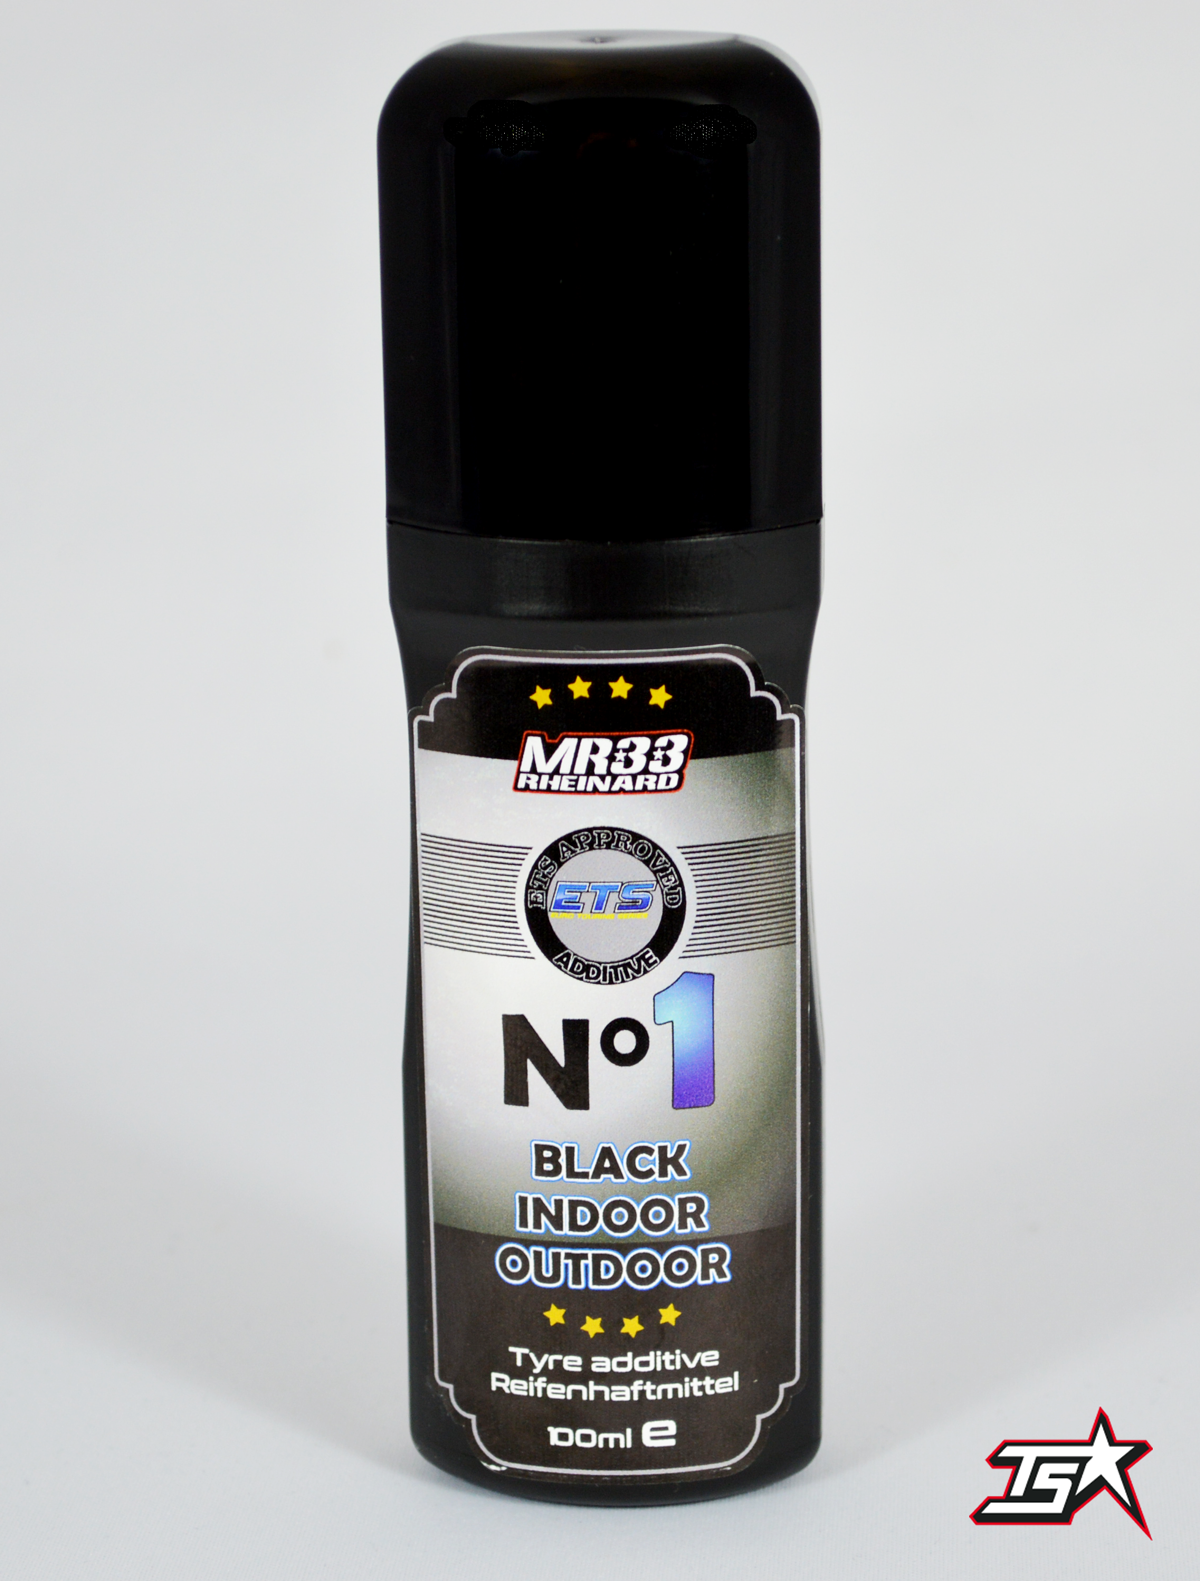 MR33 No1 Black Indoor/Outdoor Tyre Additive 100ml